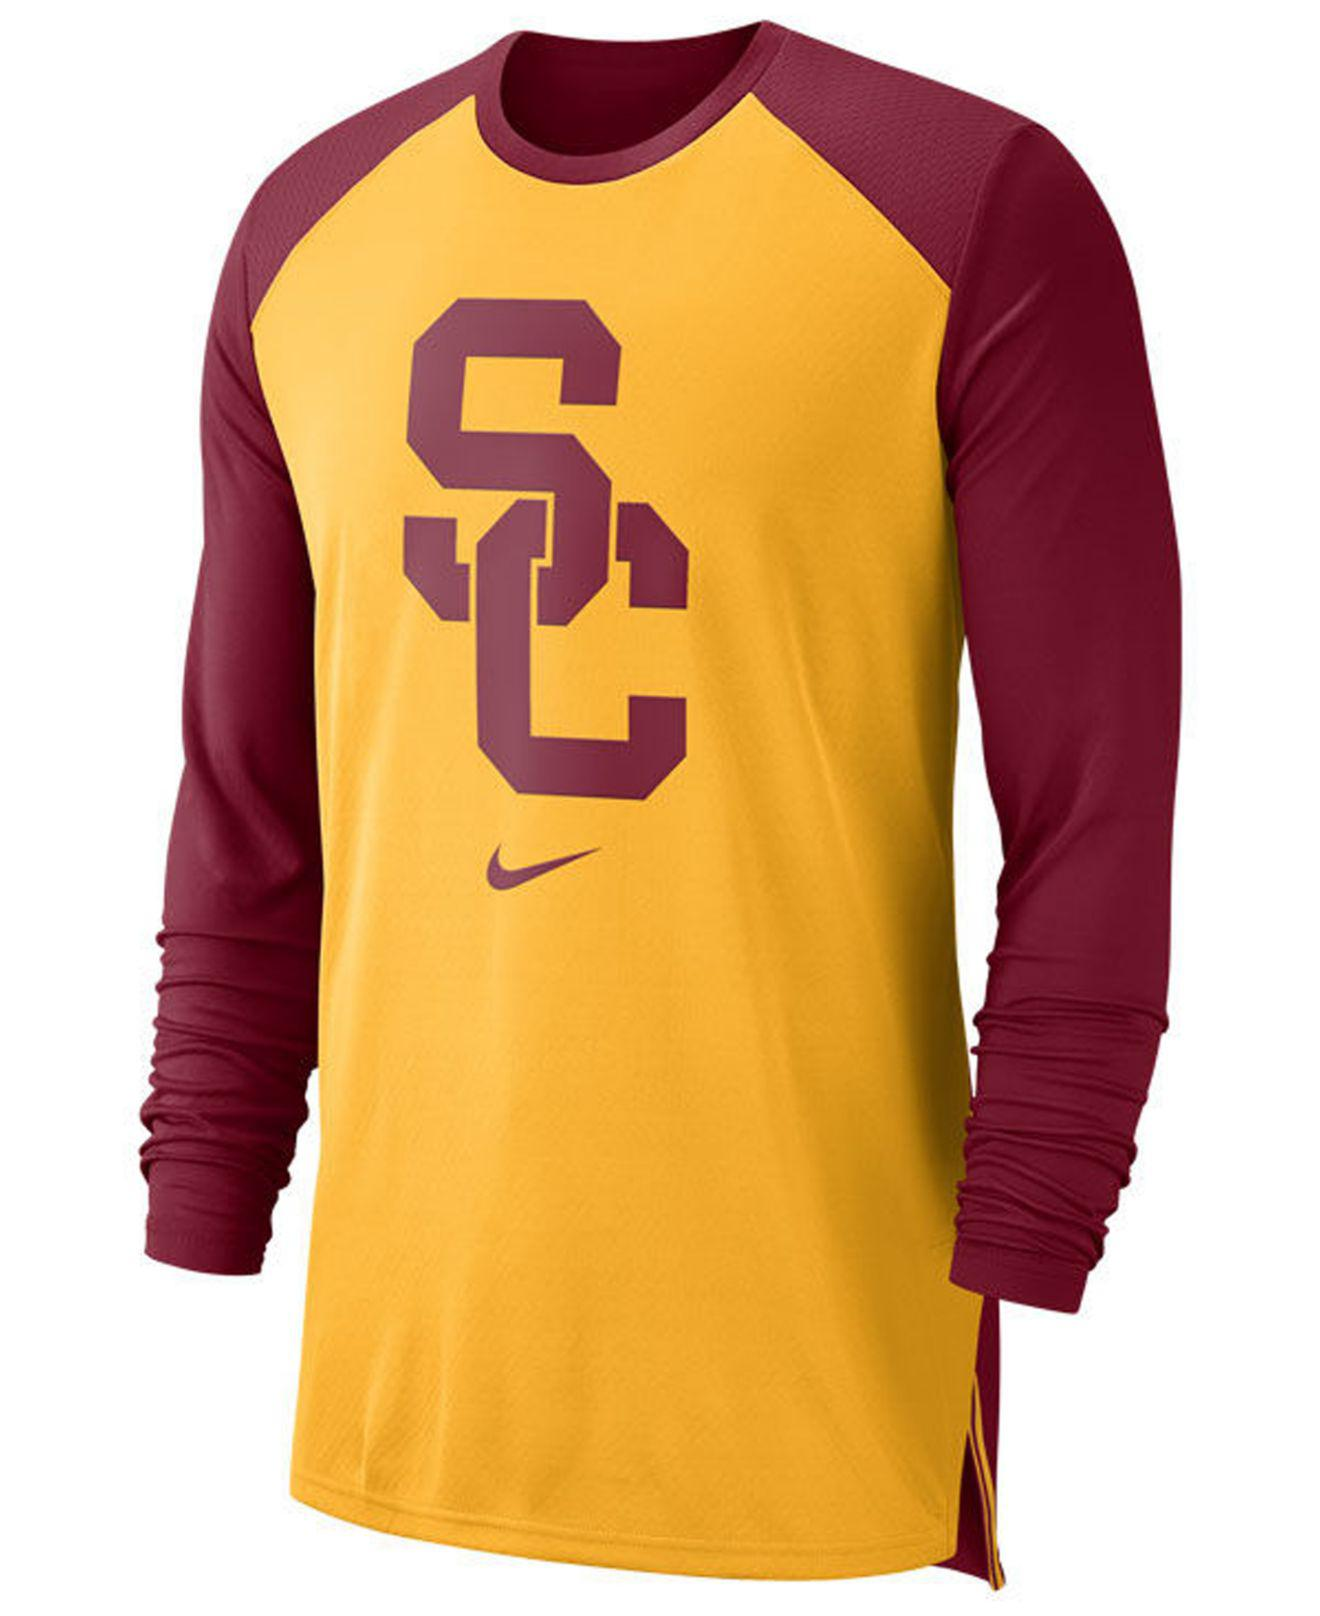 a355358e5 Lyst - Nike Usc Trojans Breathe Shooter Long Sleeve T-shirt for Men